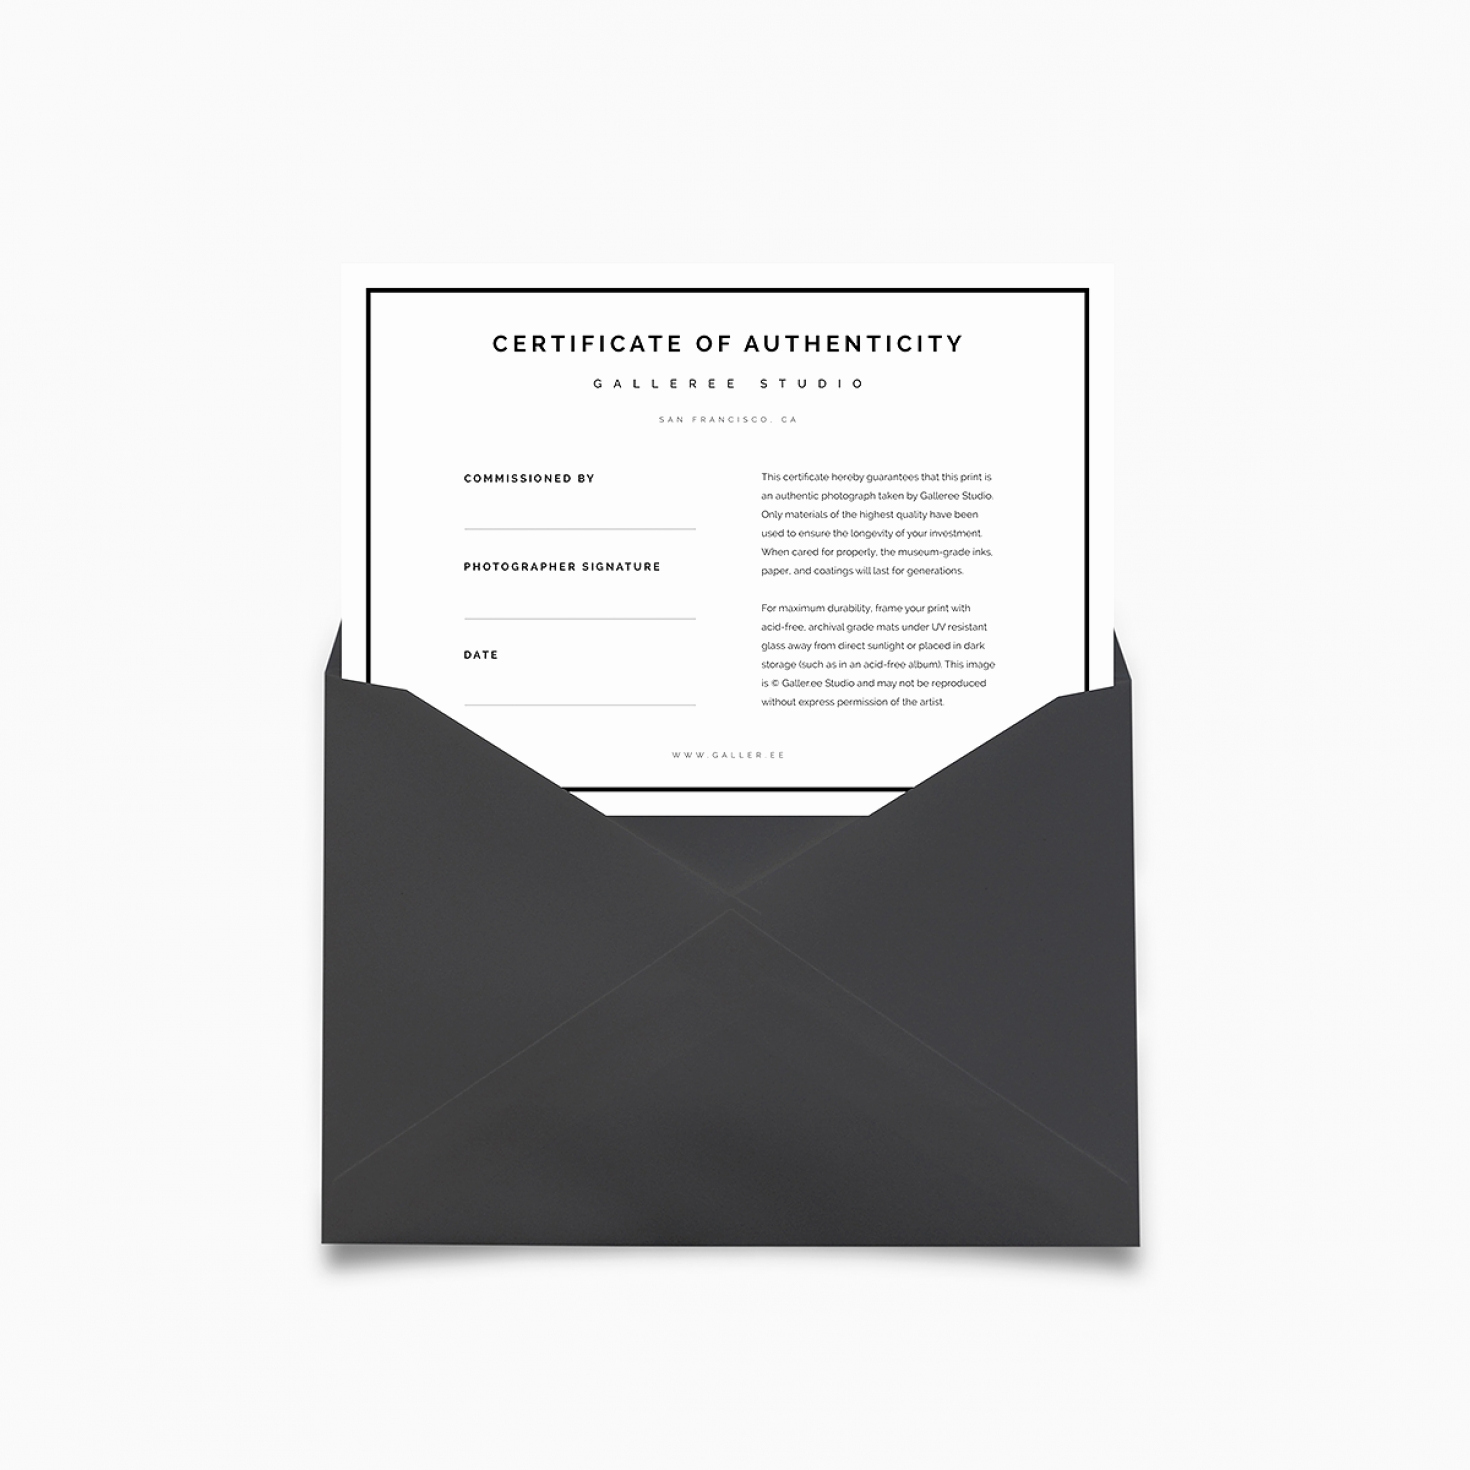 Certificate Of Authenticity Photography Template New Certificates Authenticity